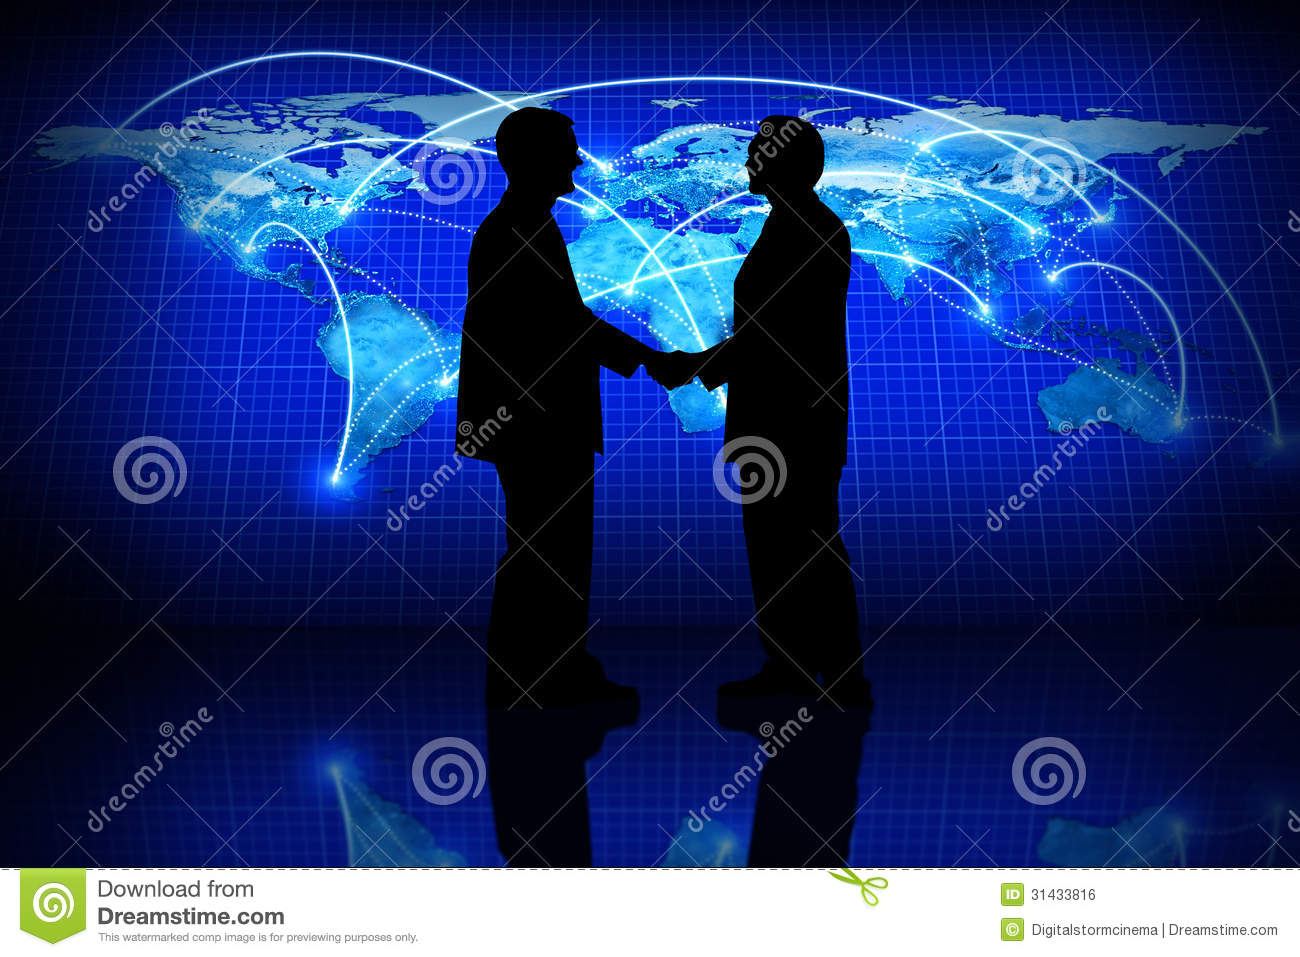 Global Business Royalty Free Stock Image - Image: 31433816